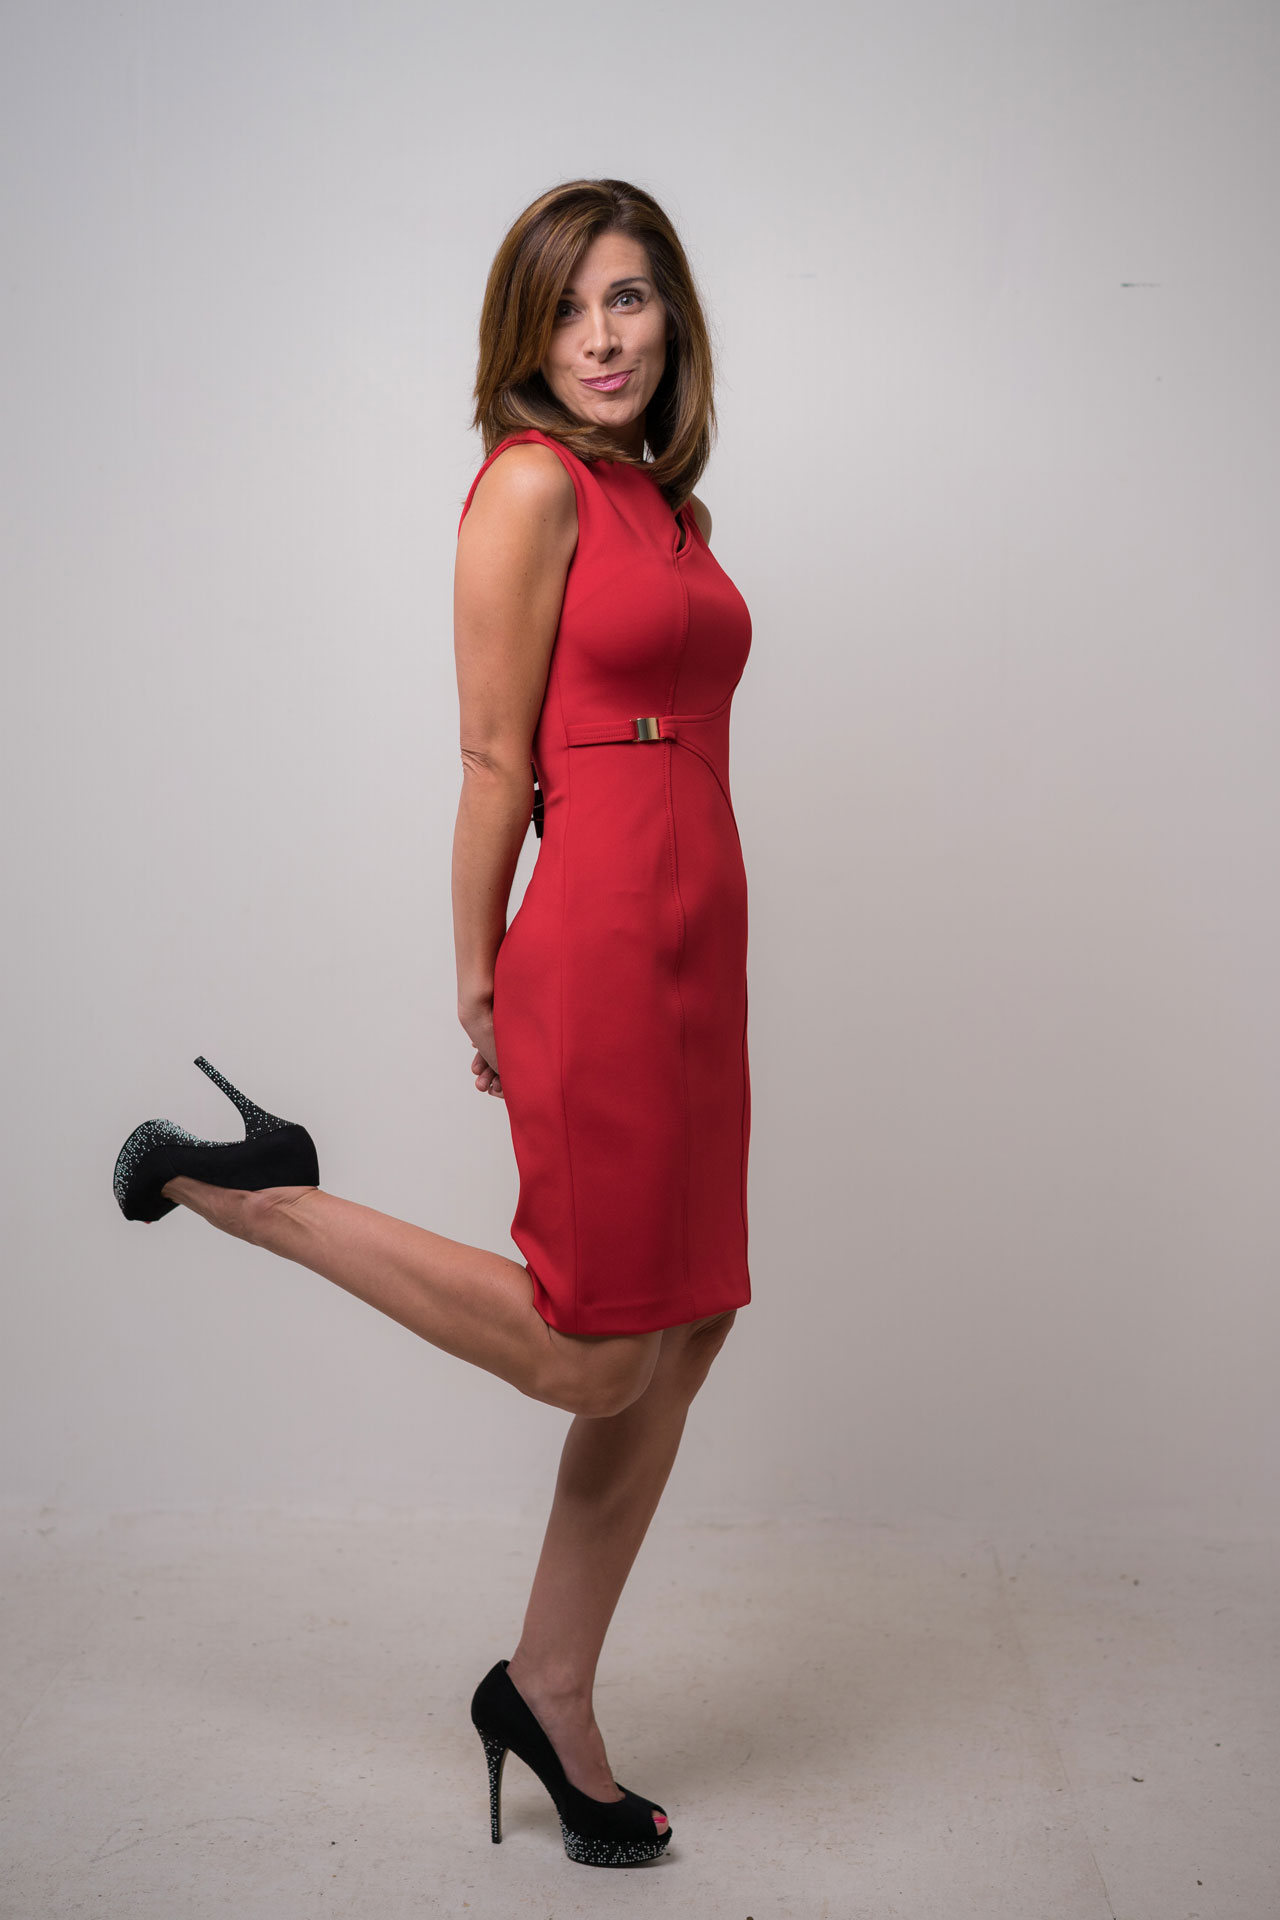 Blanca Cobb, body language expert, cute pose in red dress